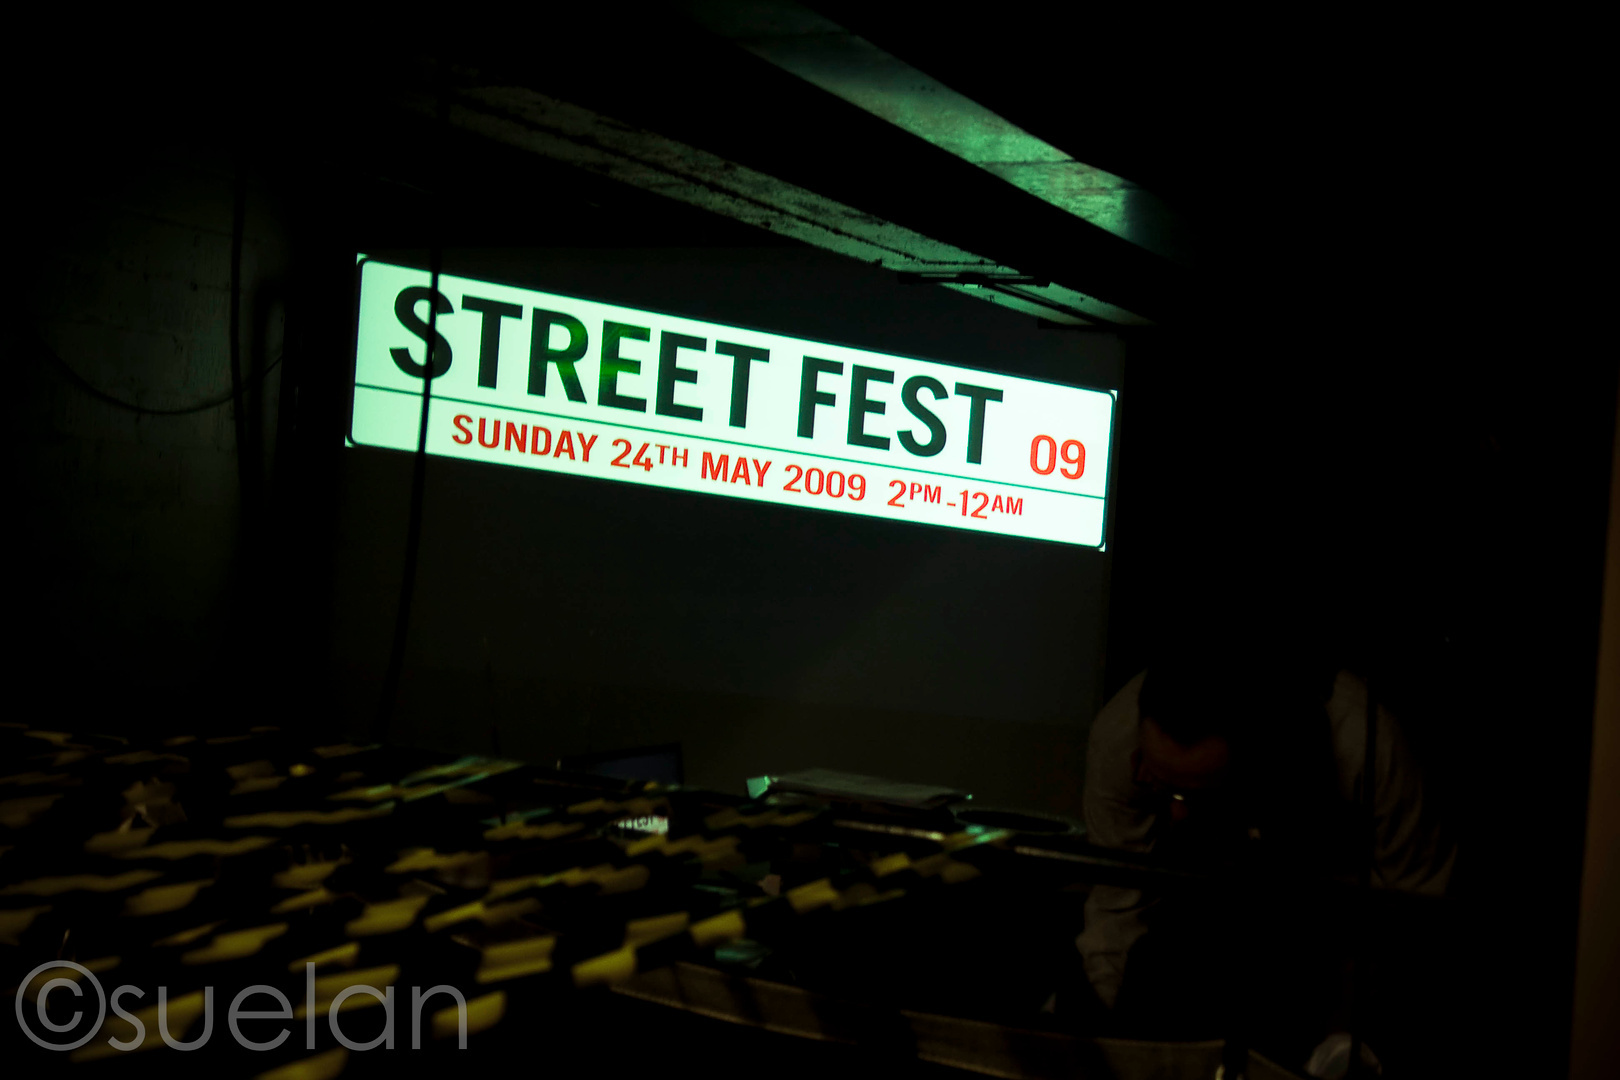 Streetfest London Event Photography